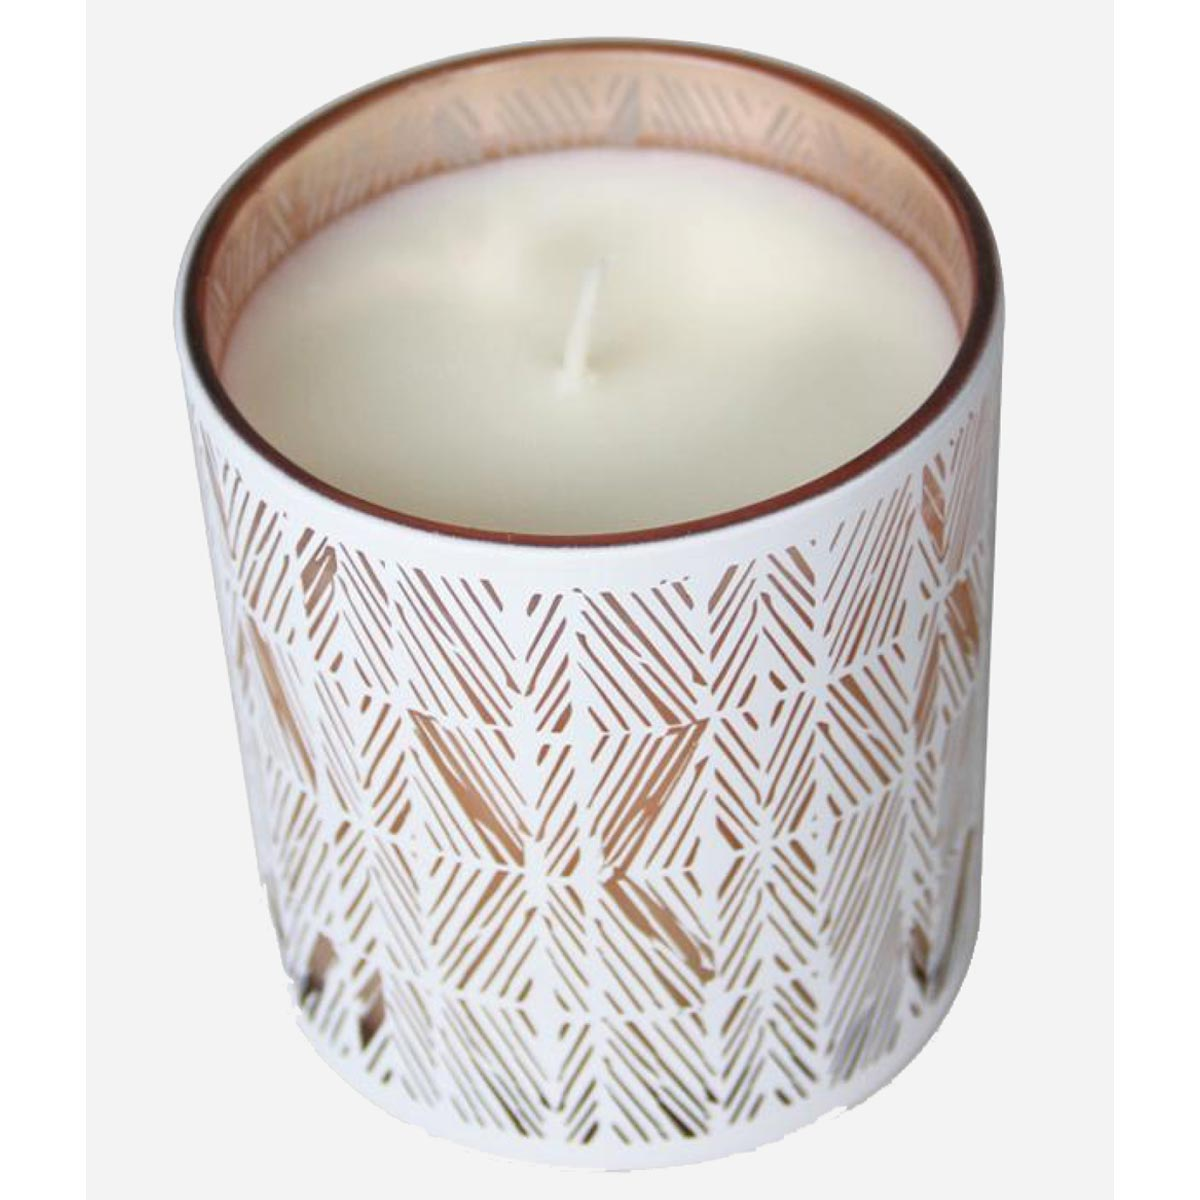 Noho Home 8 oz. Gardenia Scented Soy Candle